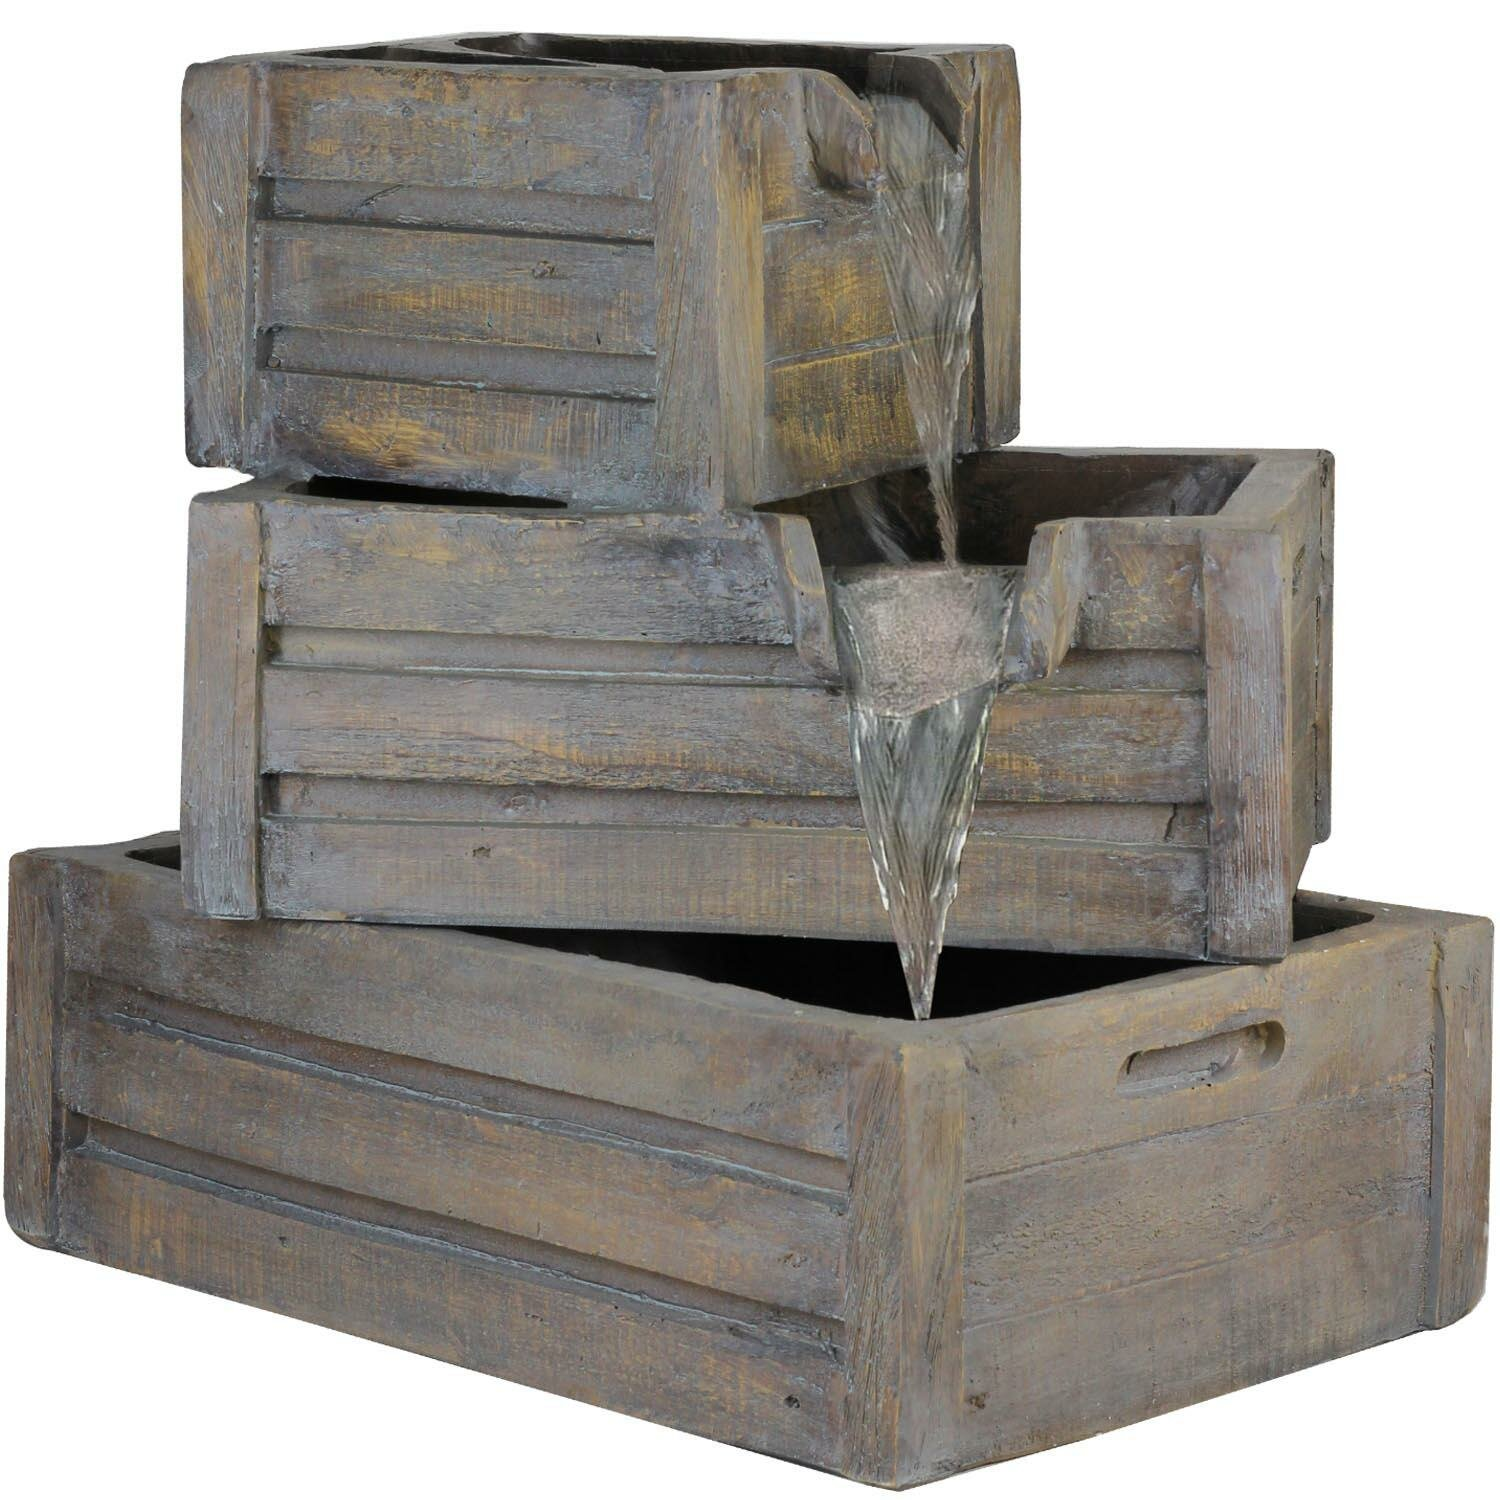 Northlight Polystone 3 Tier Planter Boxes Outdoor Water Fountain